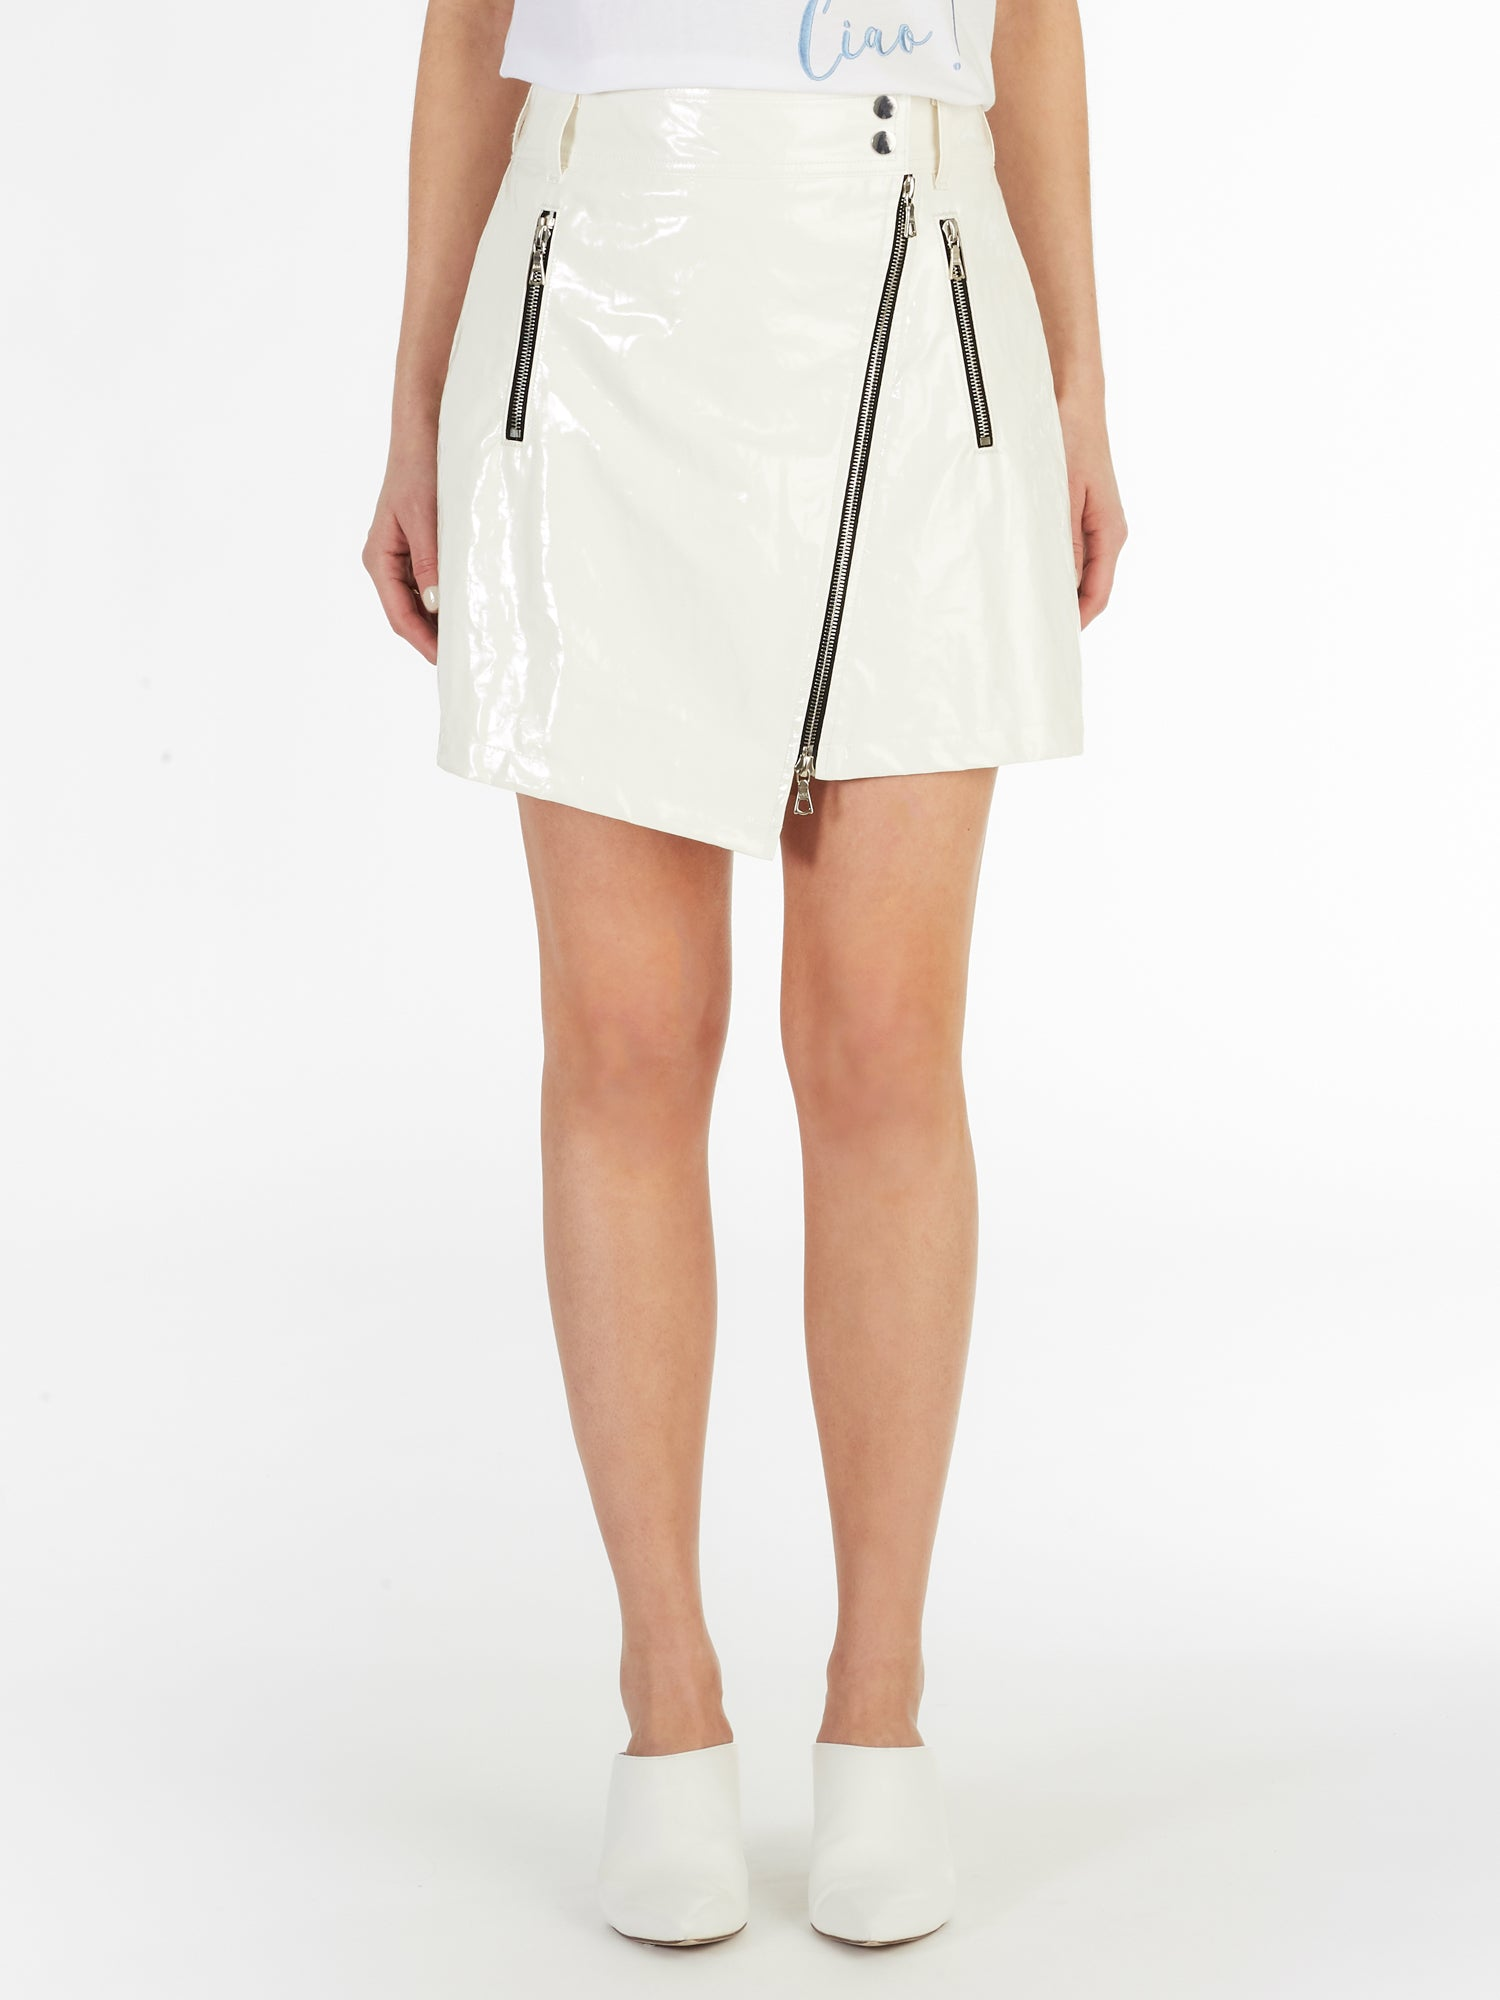 Asymmetric Zipped Front PU Skirt in White